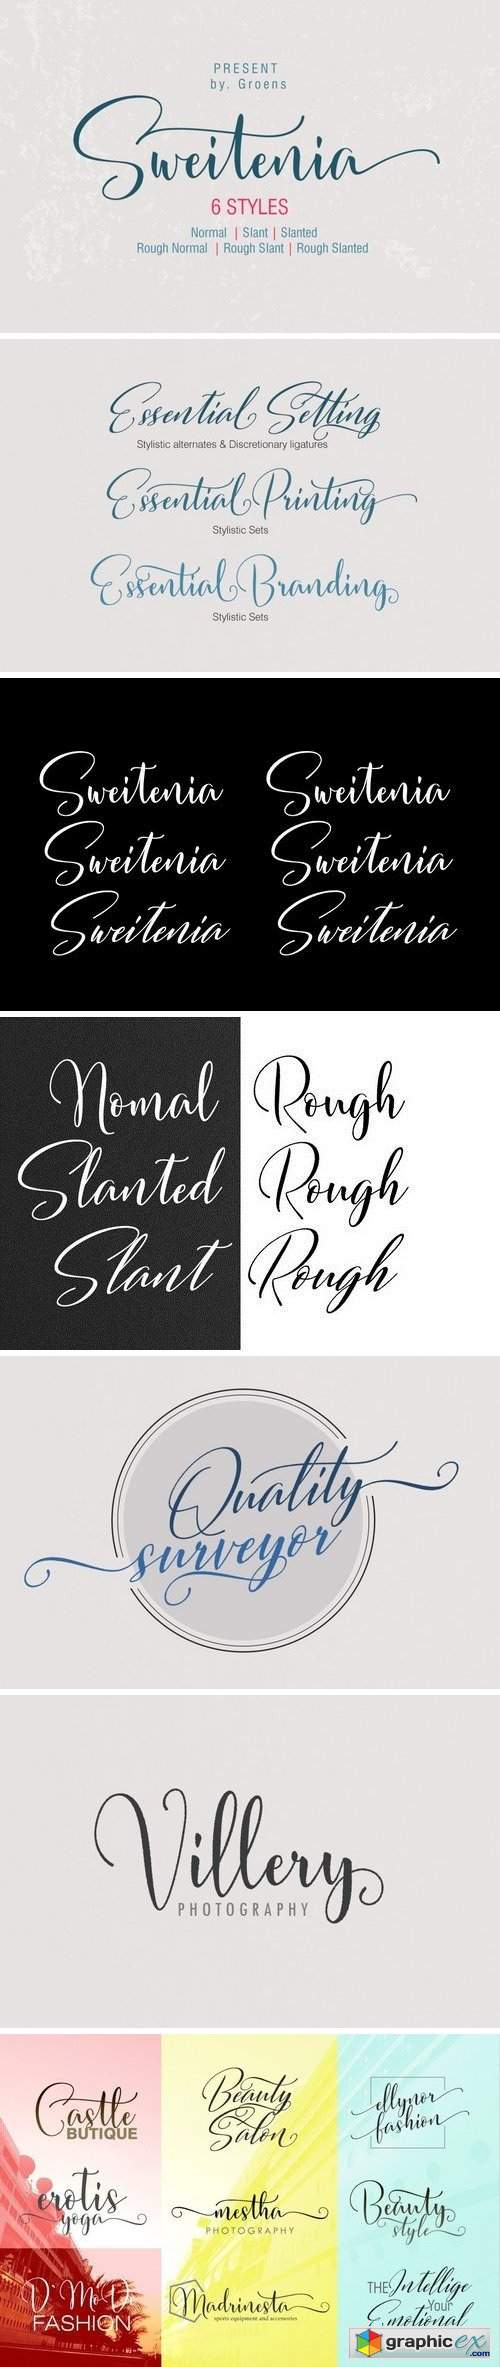 Sweitenia Font Family - 6 Fonts